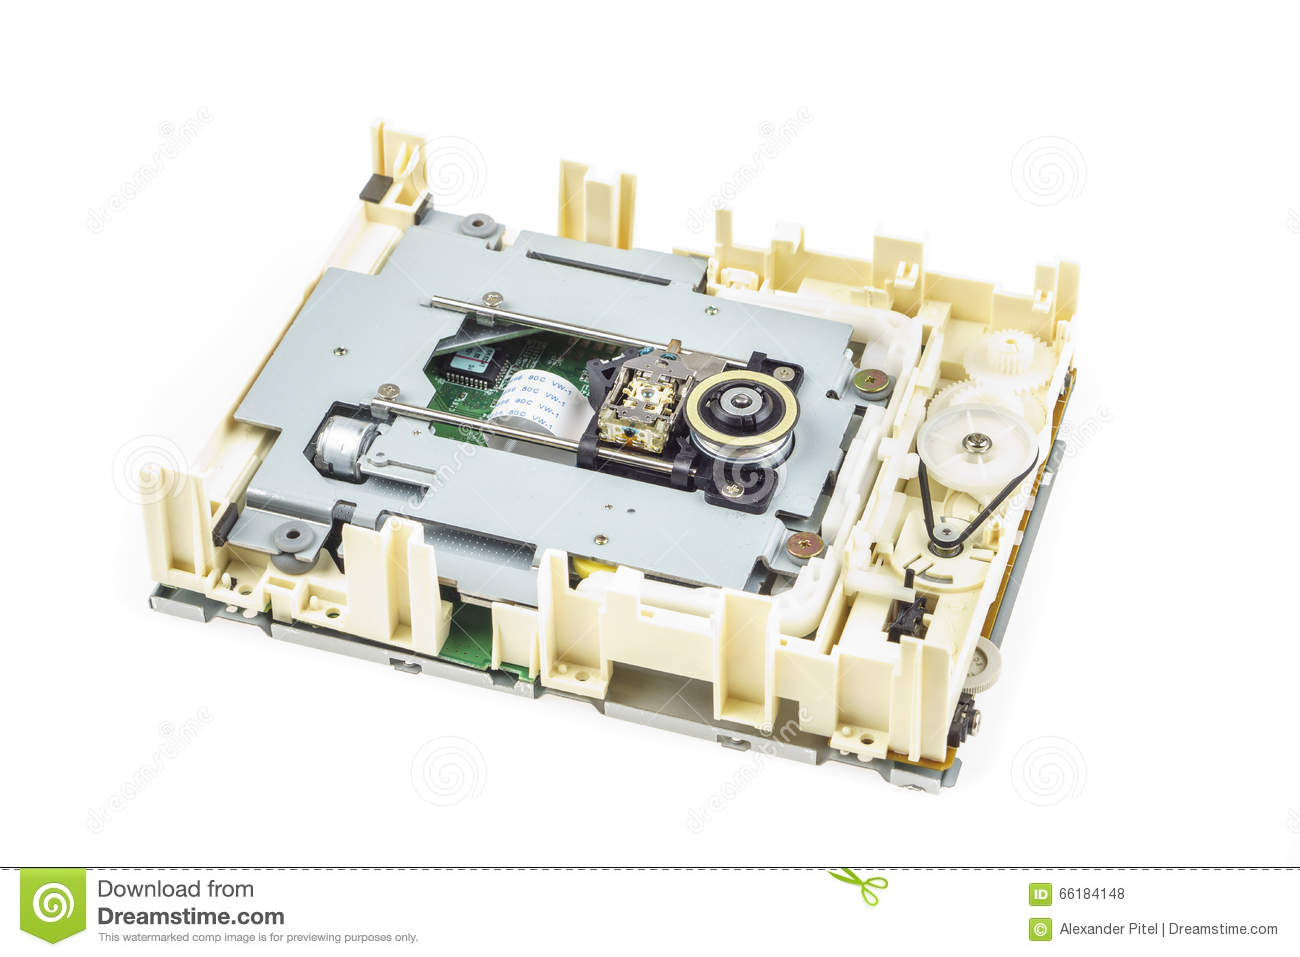 Computer Cd Rom Drive Disassembled 01 Stock Photo